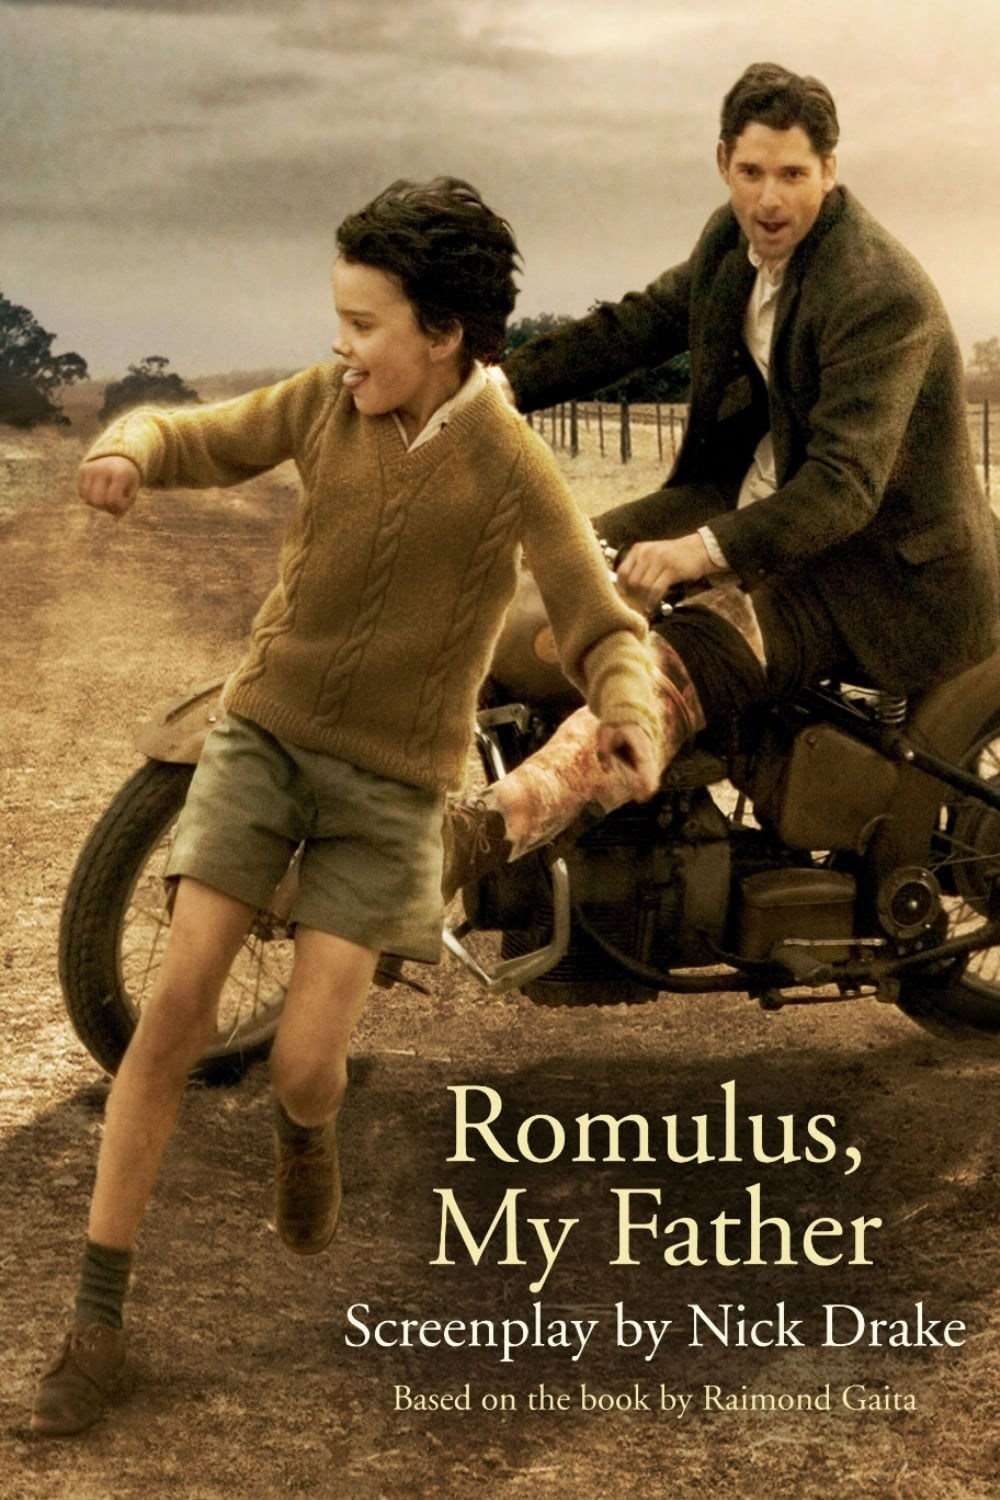 romulus my father ort Romulus, my father is a profound meditation on love and death, madness and truth, judgment and compassion it is about so much that matters that is normally so little discussed with so little honesty.